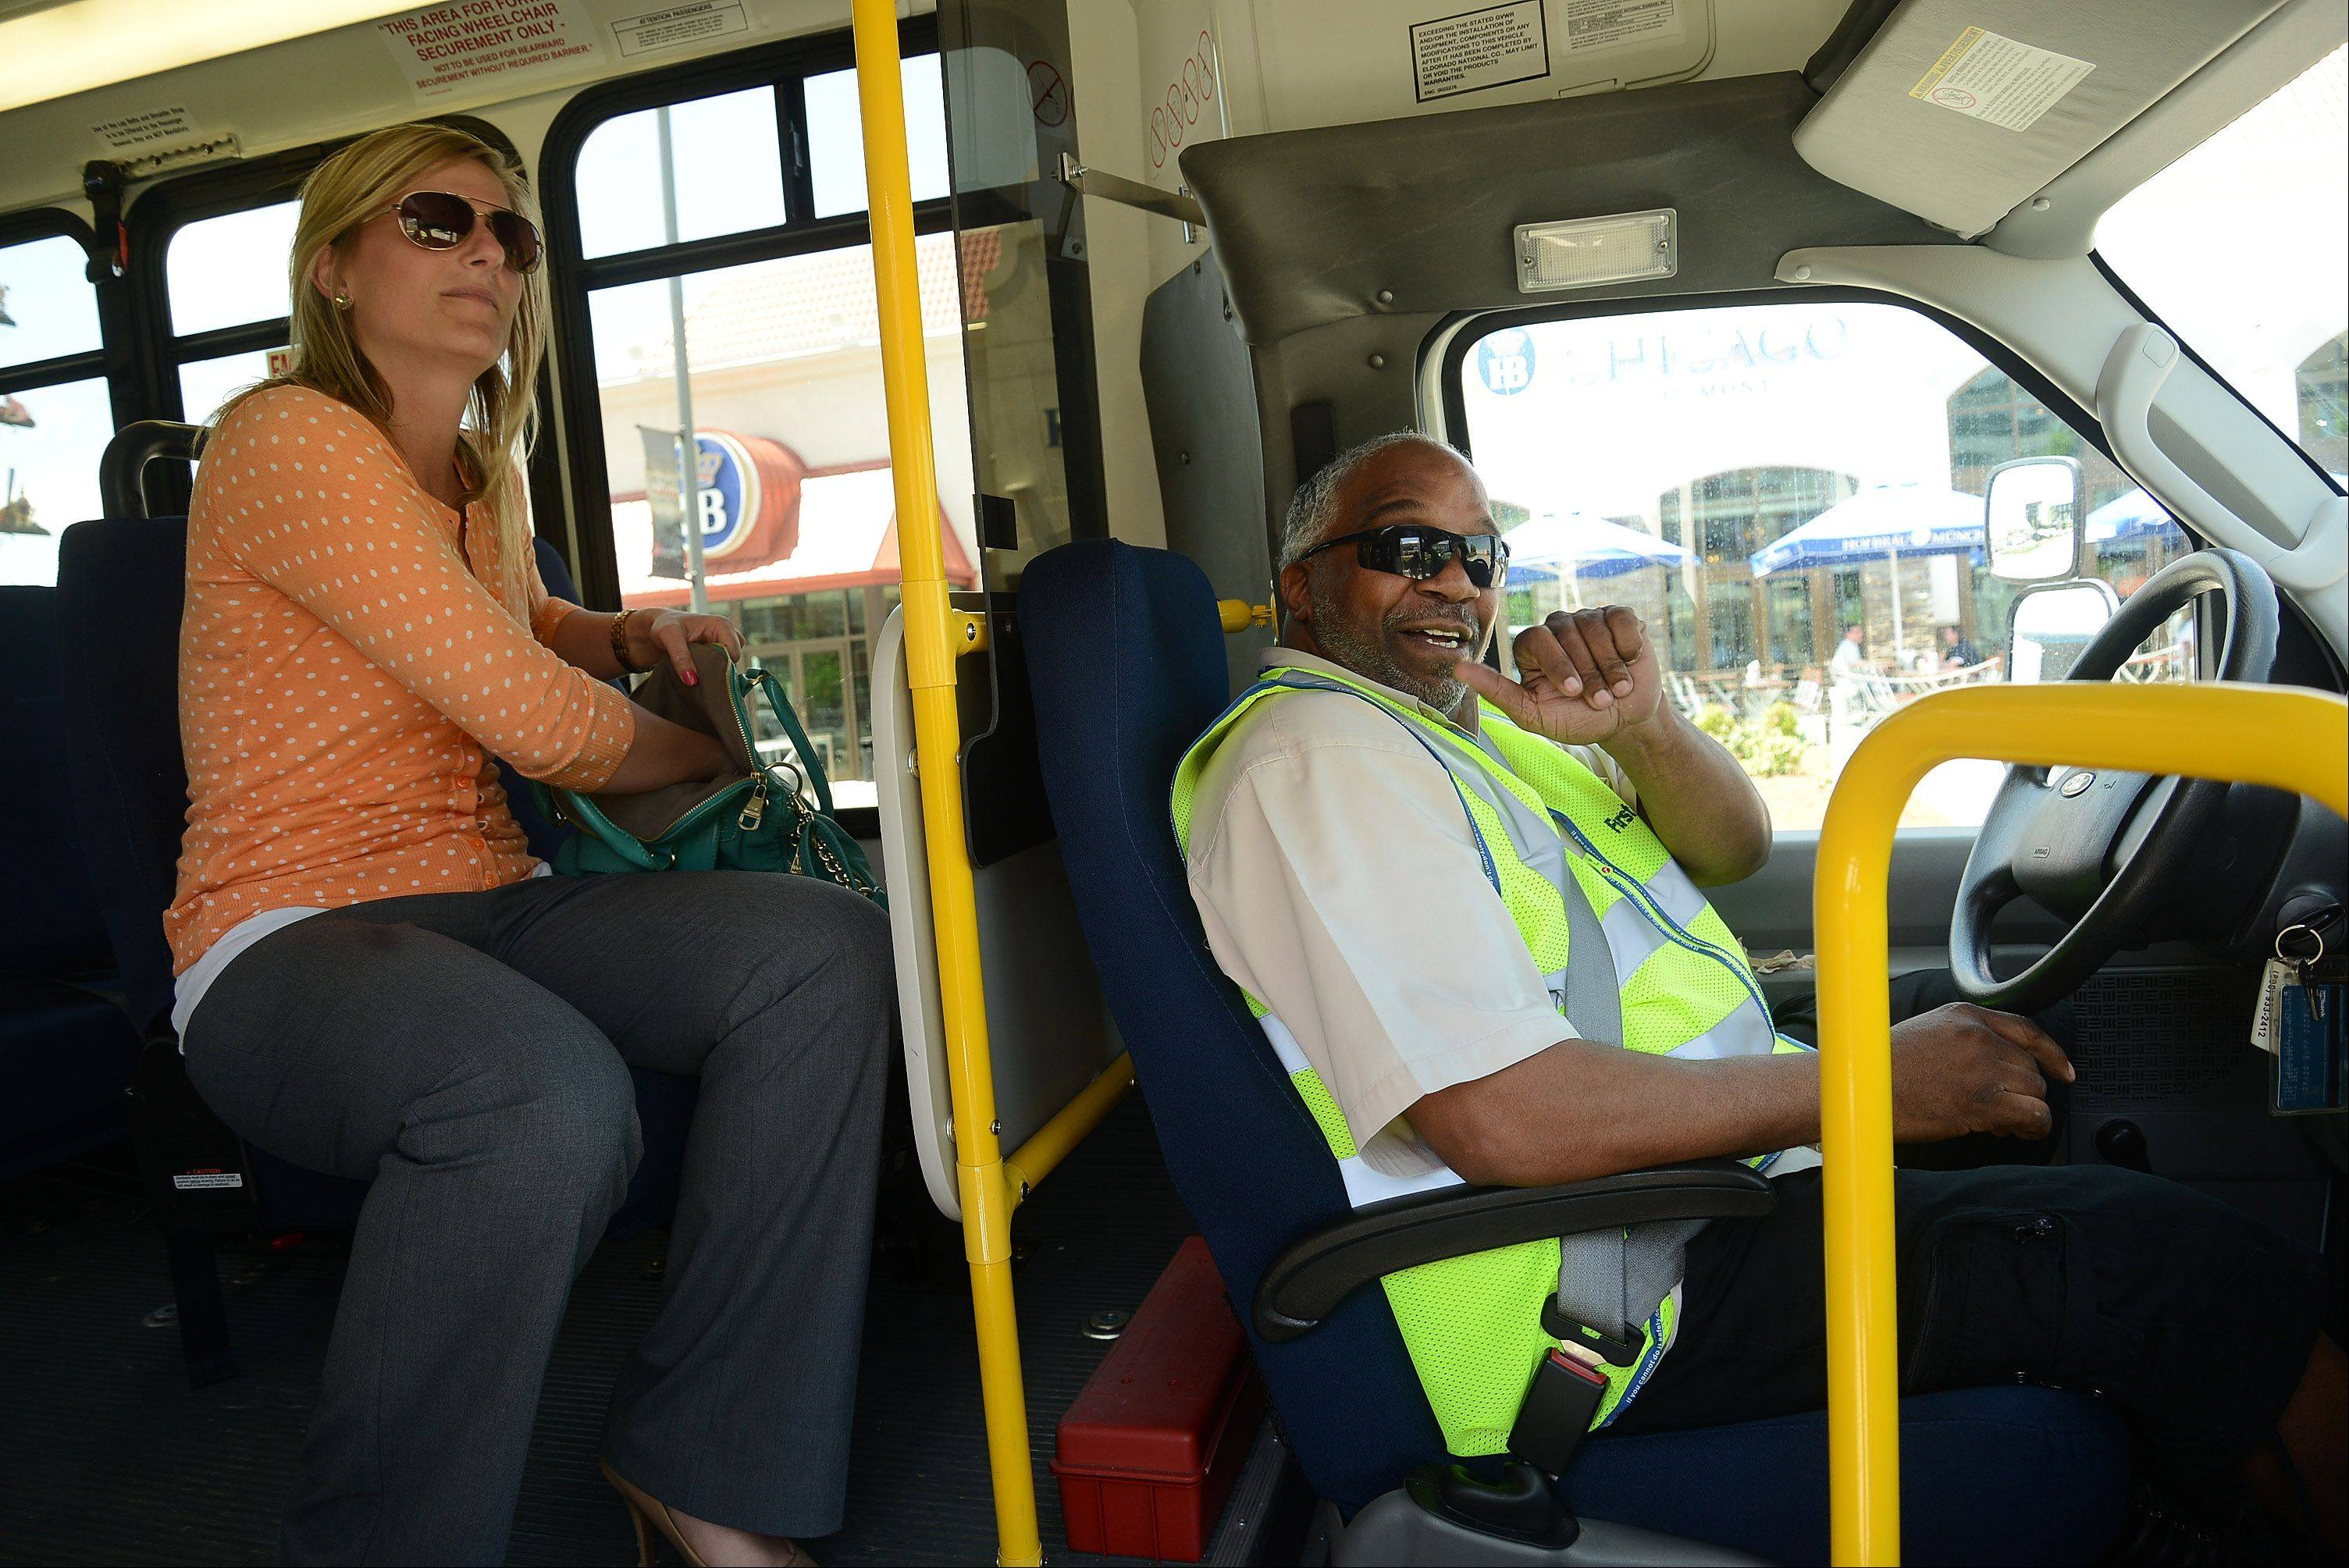 Rosemont launches lunchtime bus service hoping to help restaurants